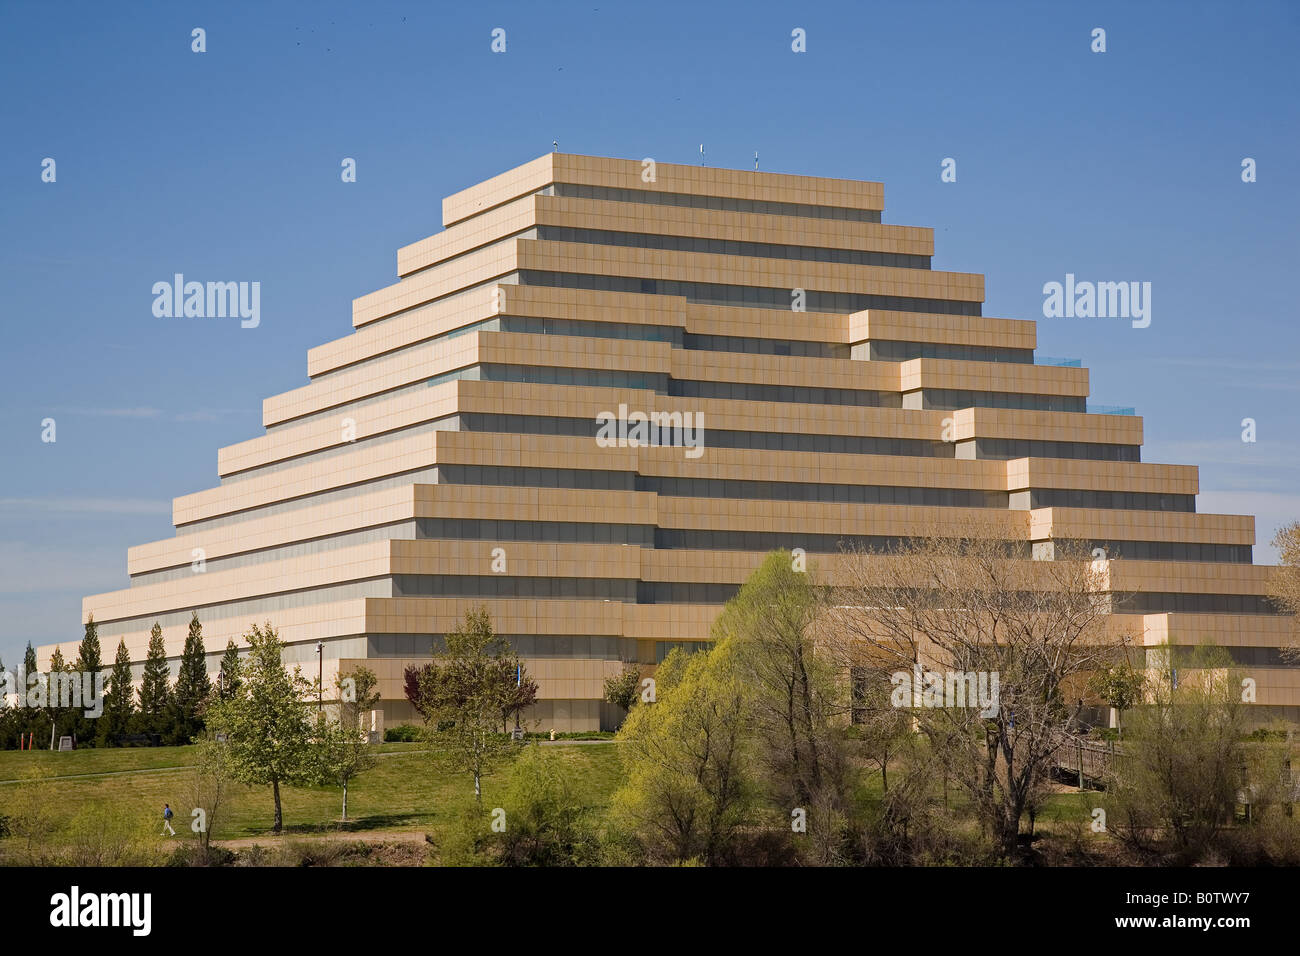 The Ziggurat Building, Located In The City Of West Sacramento, CA, USA Has  A Distinct Pyramid Design.